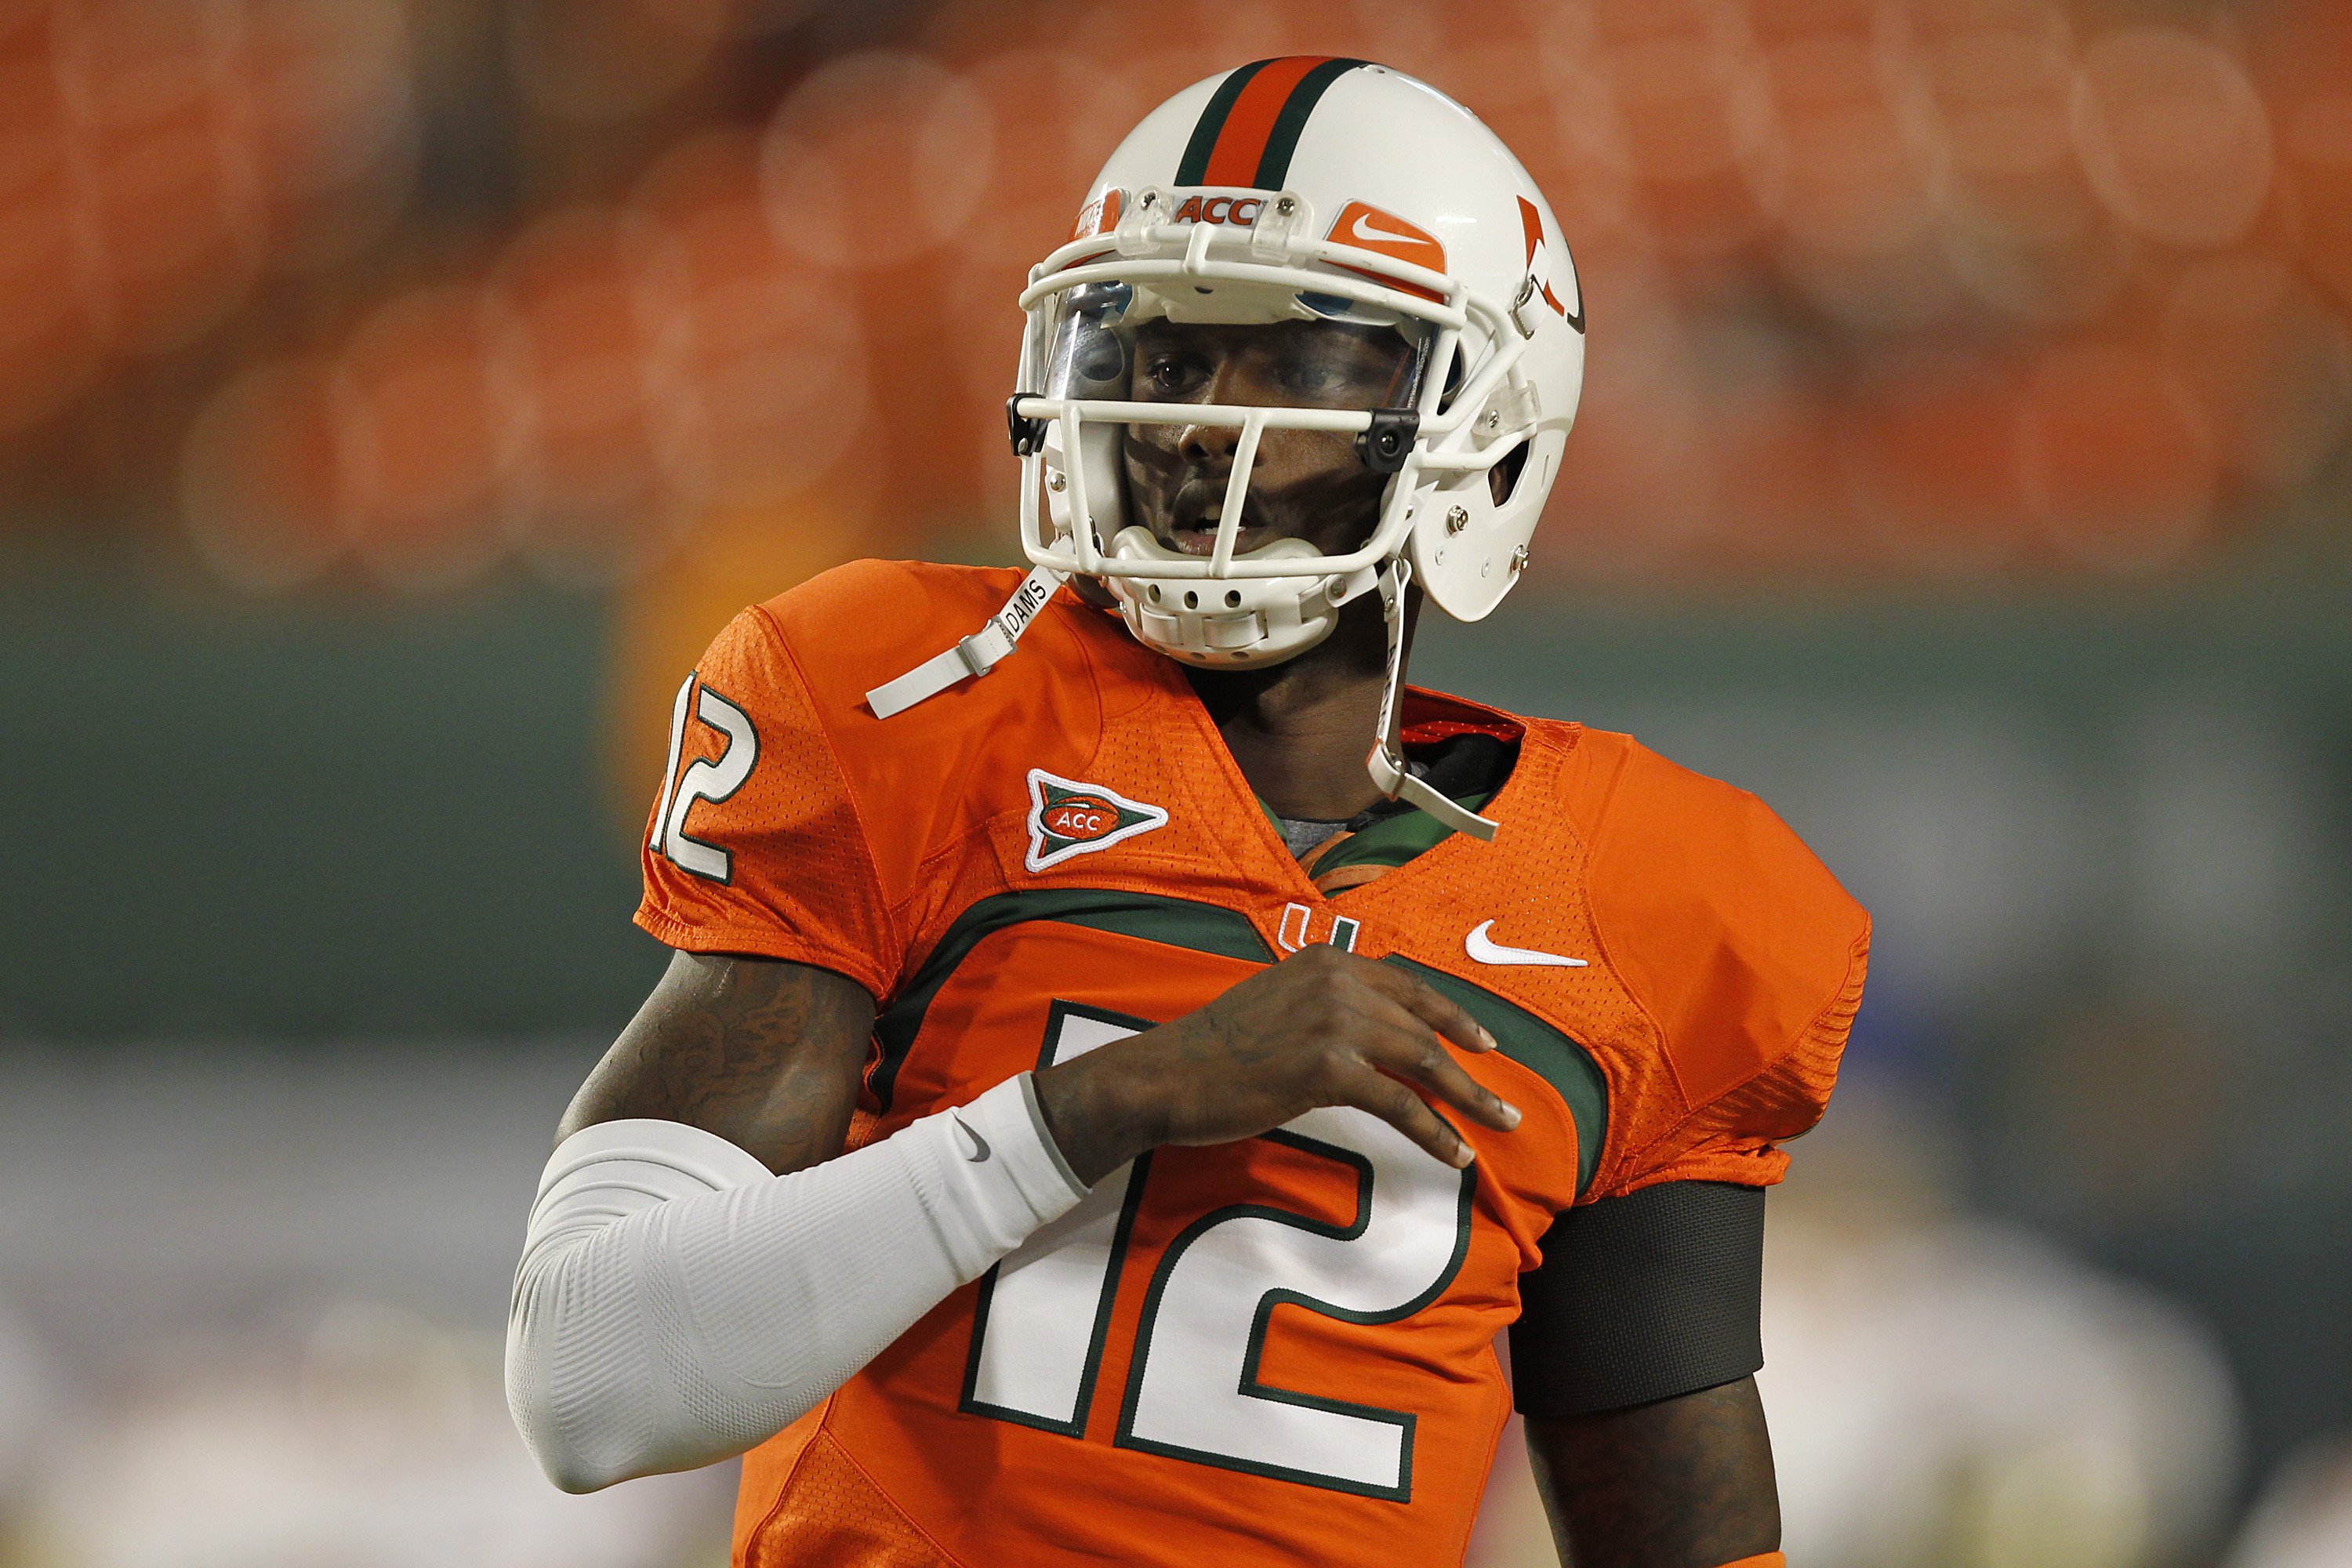 MIAMI, FL - OCTOBER 9: Jacory Harris #12 of the Miami Hurricanes warms up prior to the game against the Florida State Seminoles on October 9, 2010 at Sun Life Stadium in Miami, Florida. (Photo by Joel Auerbach/Getty Images)